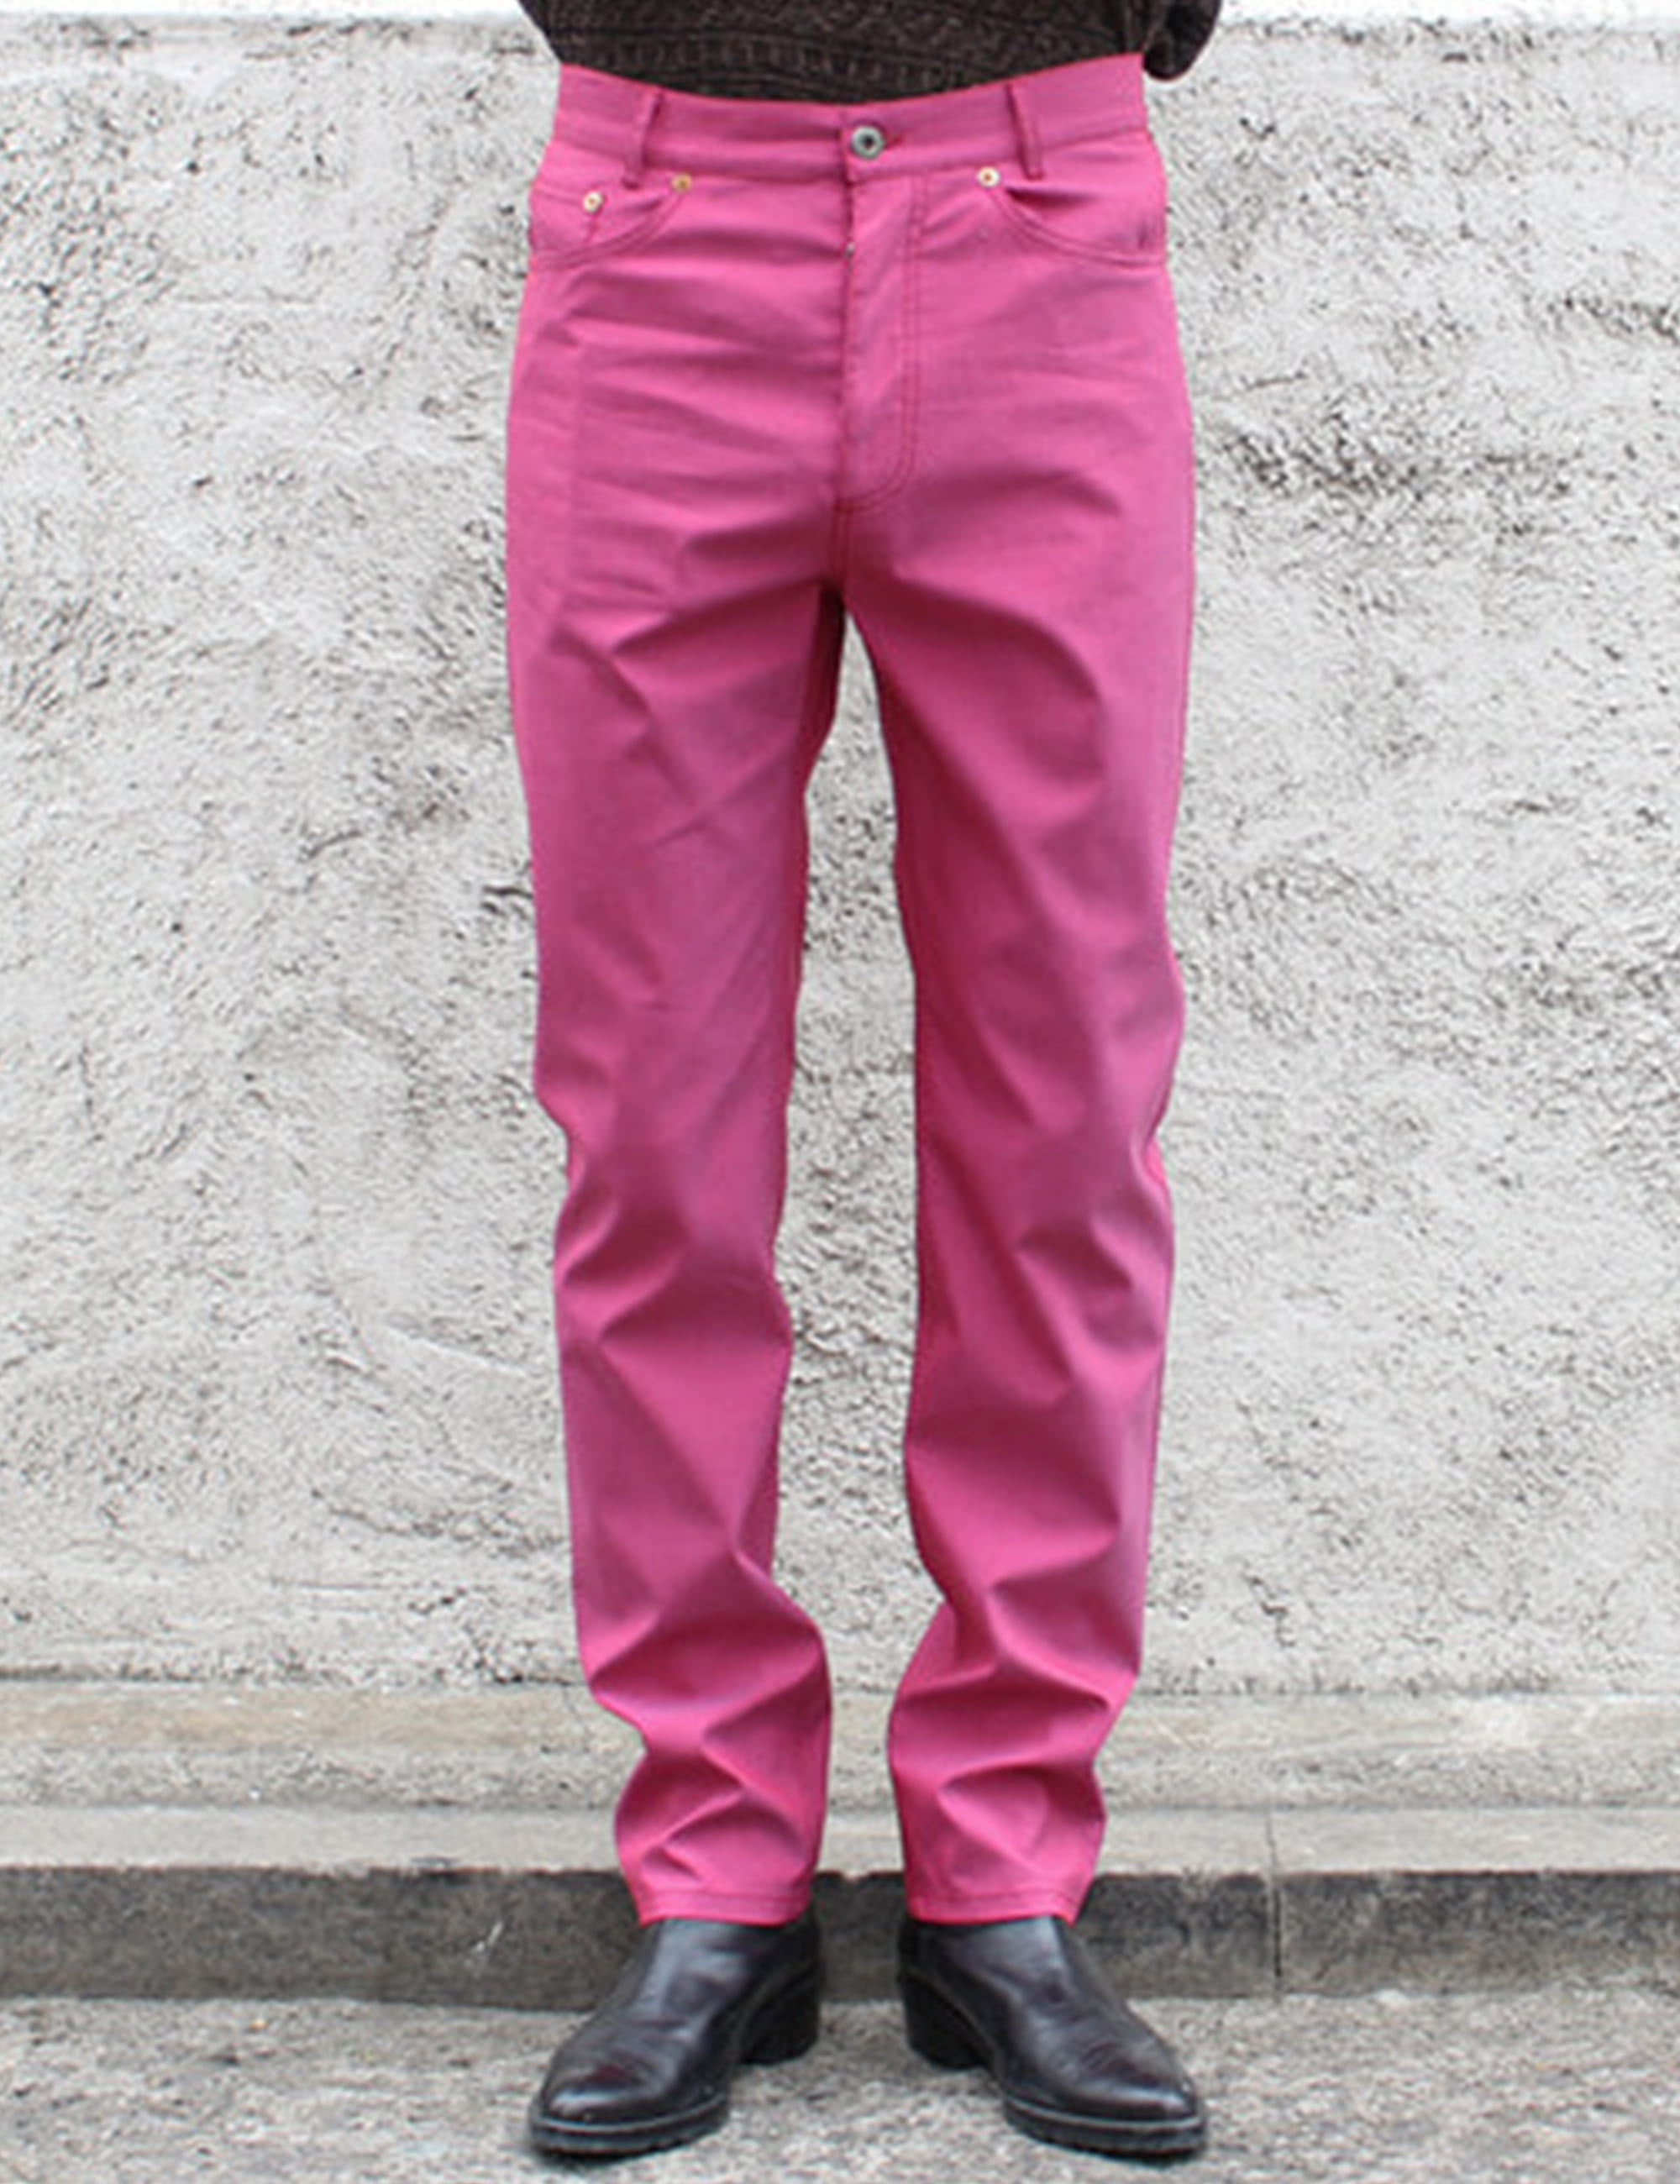 JEANS_PINK